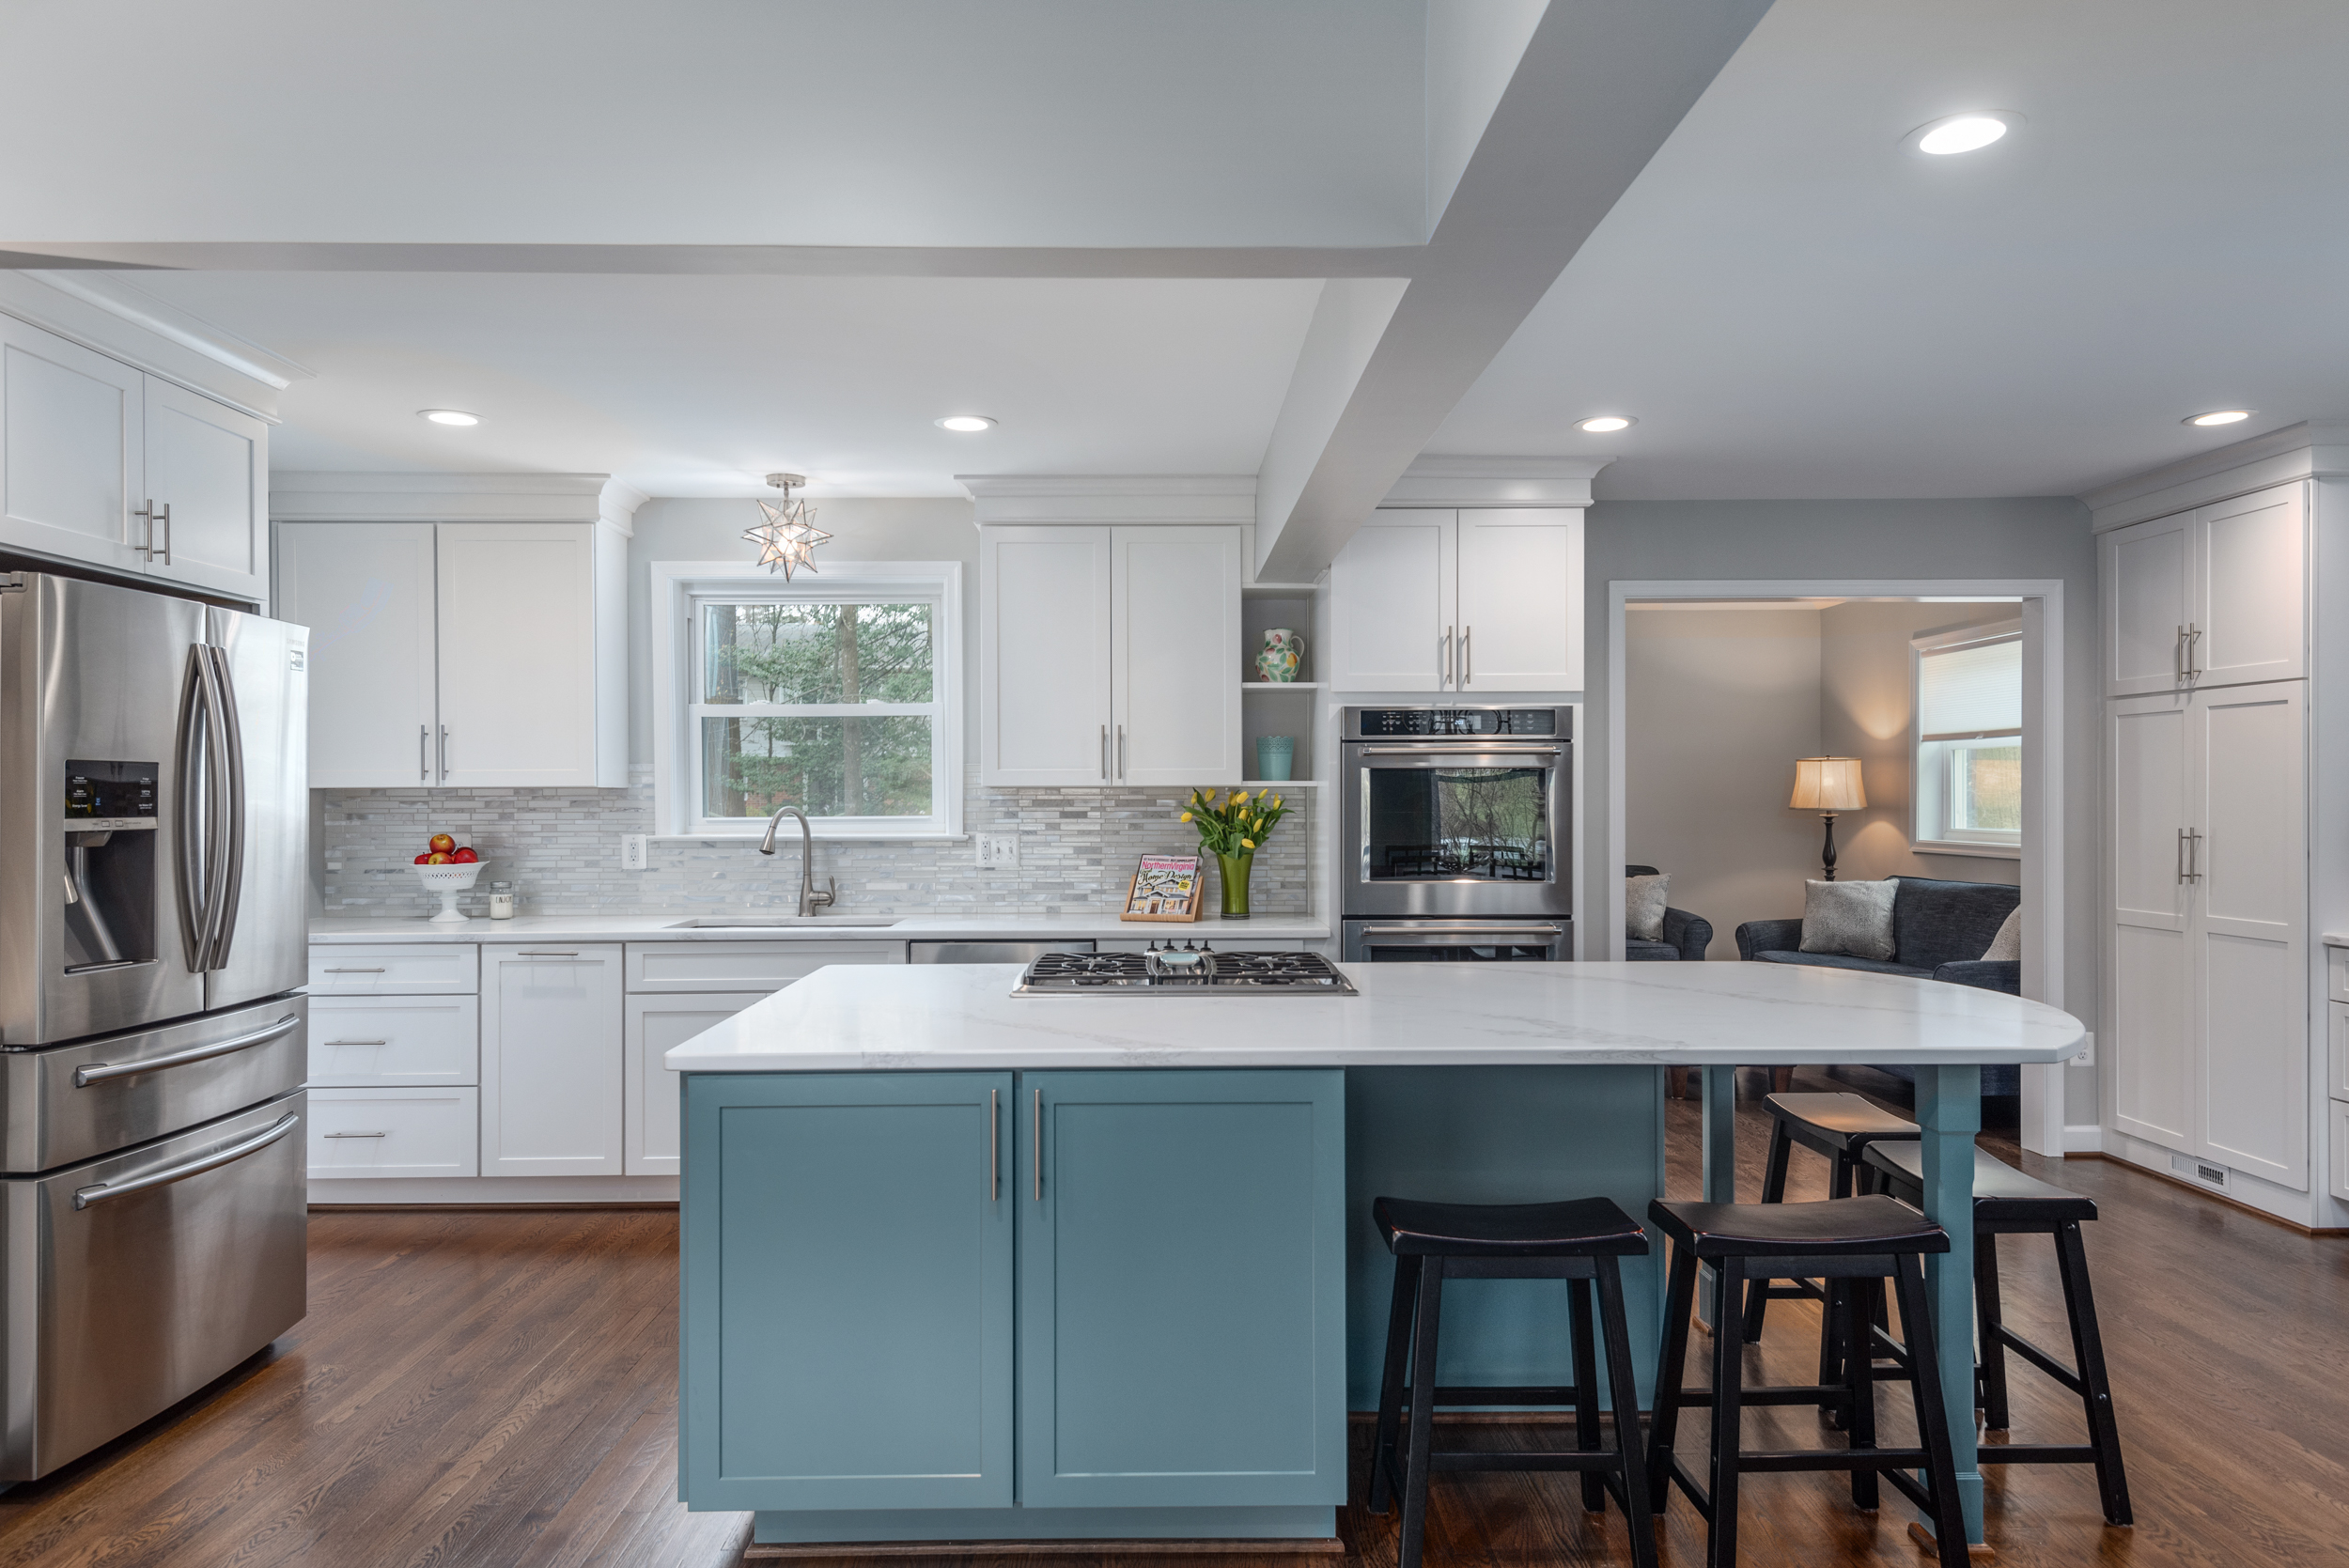 kitchen remodeling project 2019 - beautiful white kitchen with pale blue accents